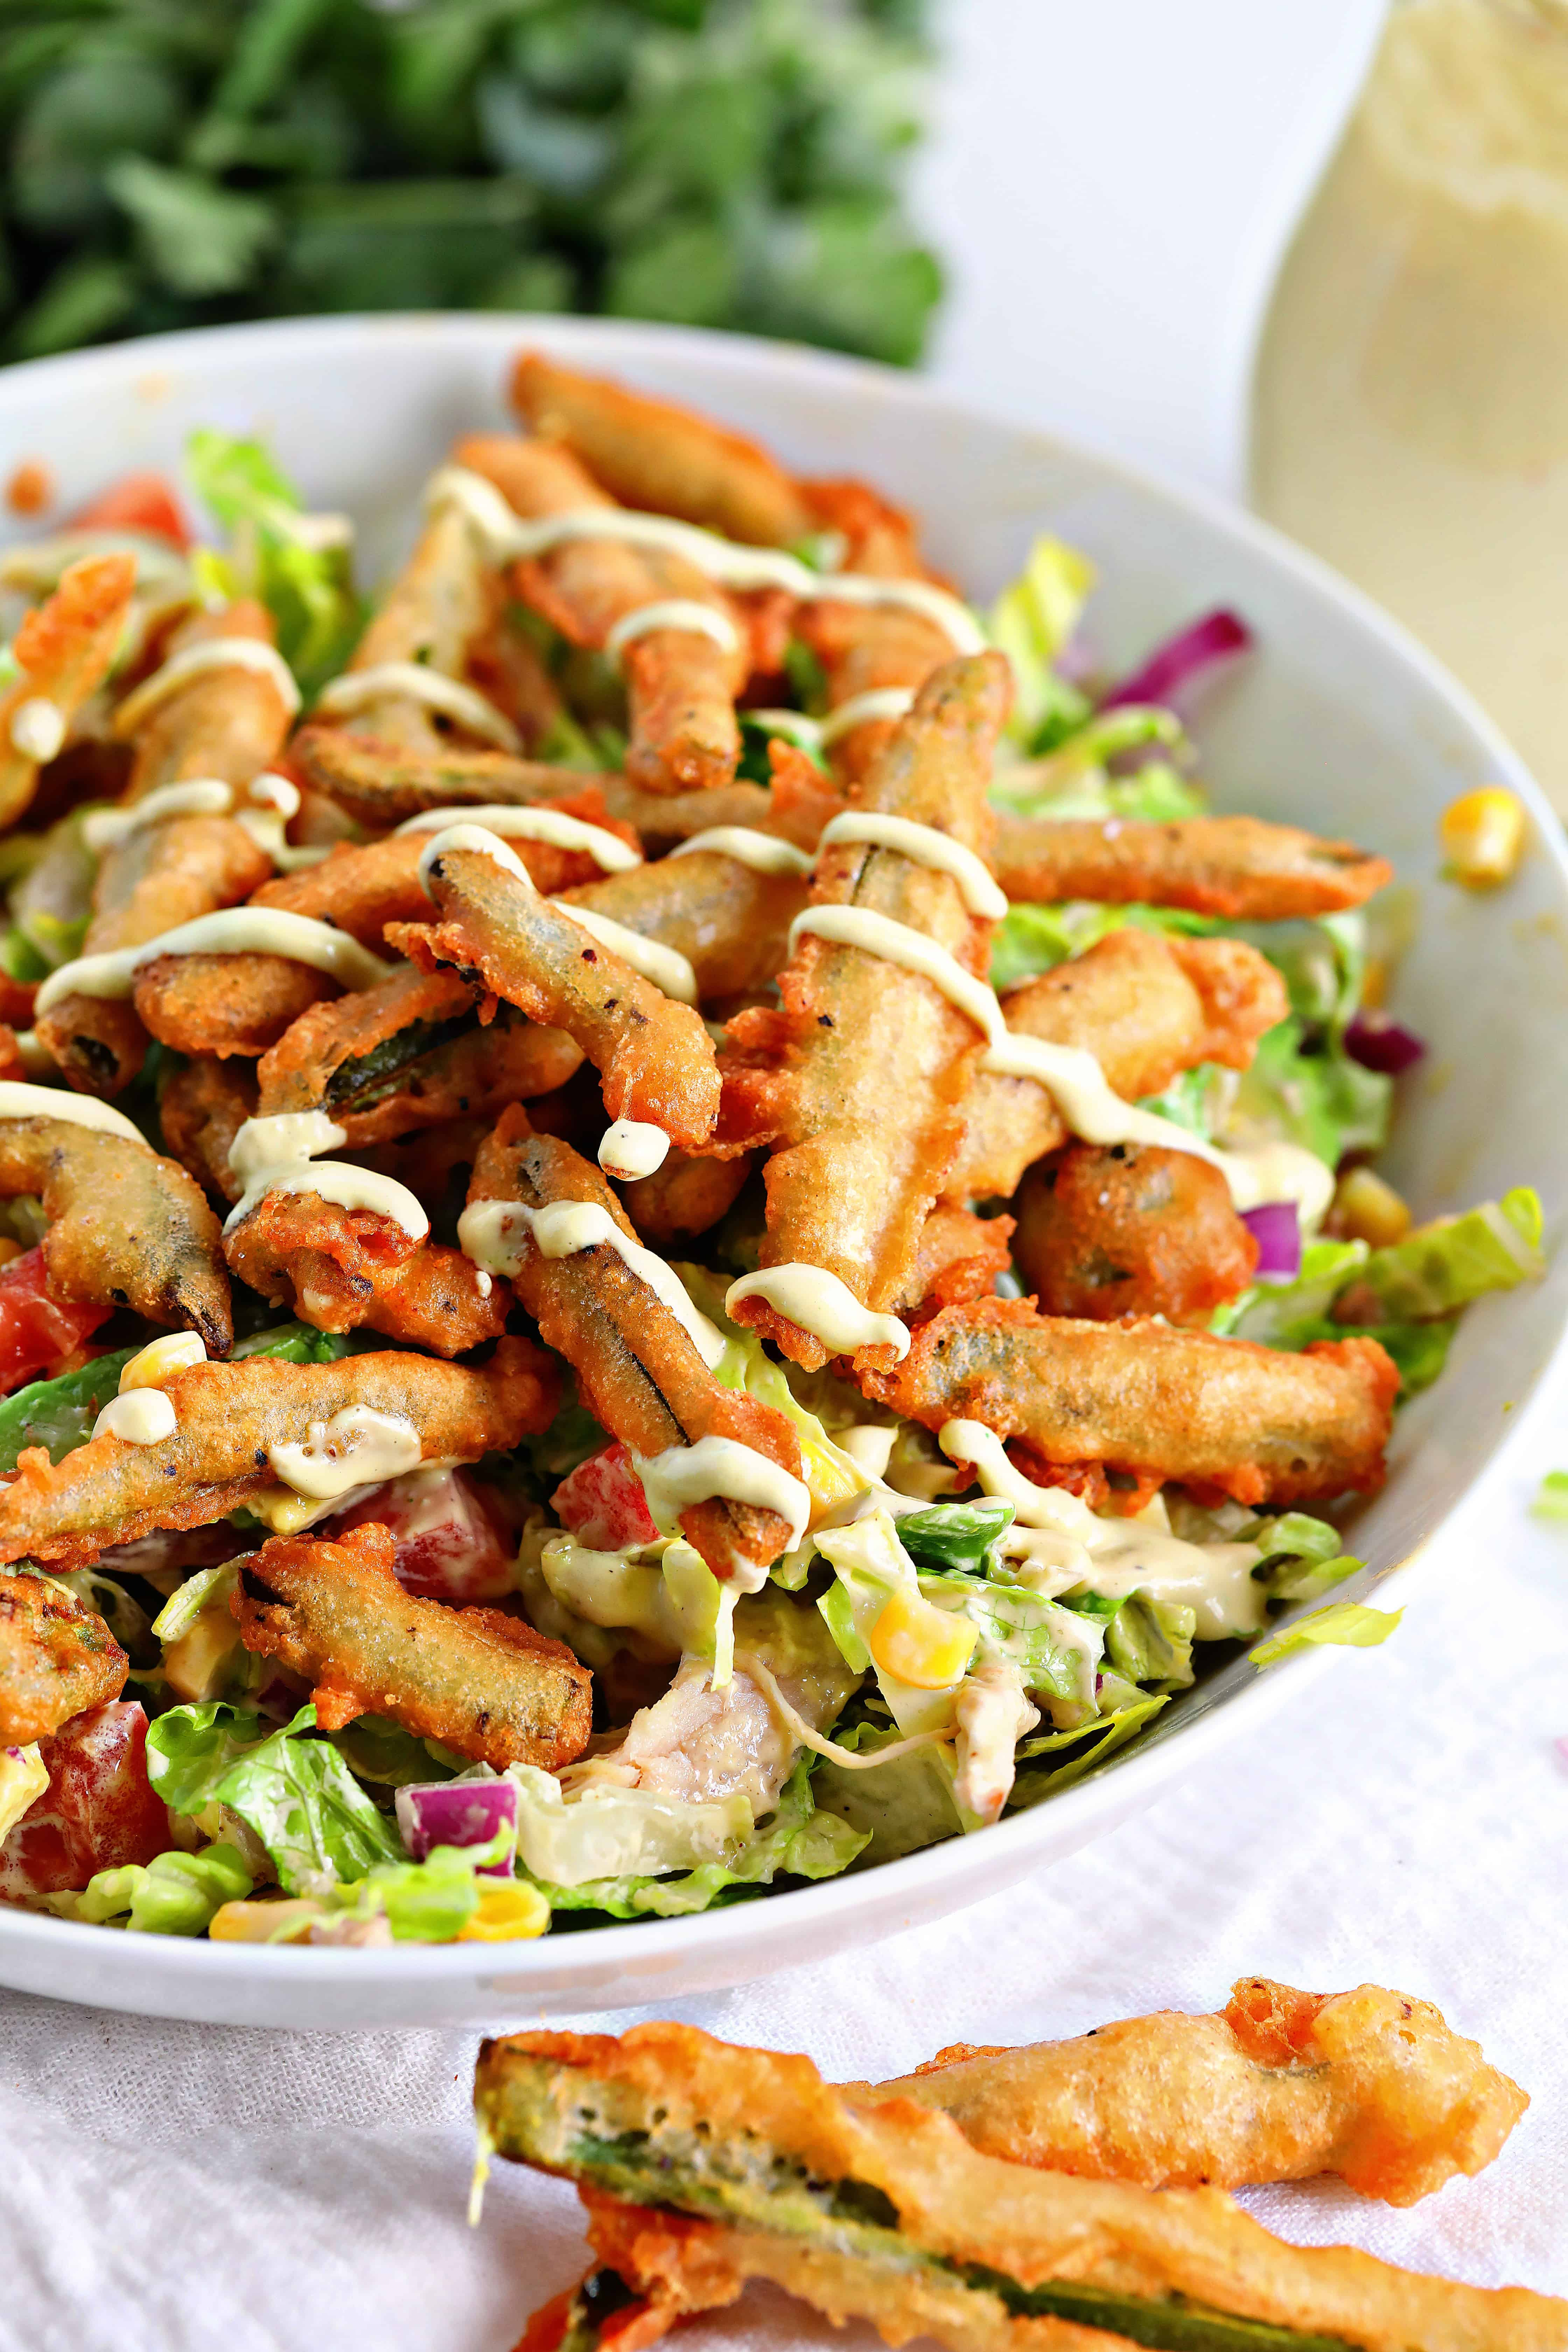 Chicken Salad with Crispy Fried Jalapenos